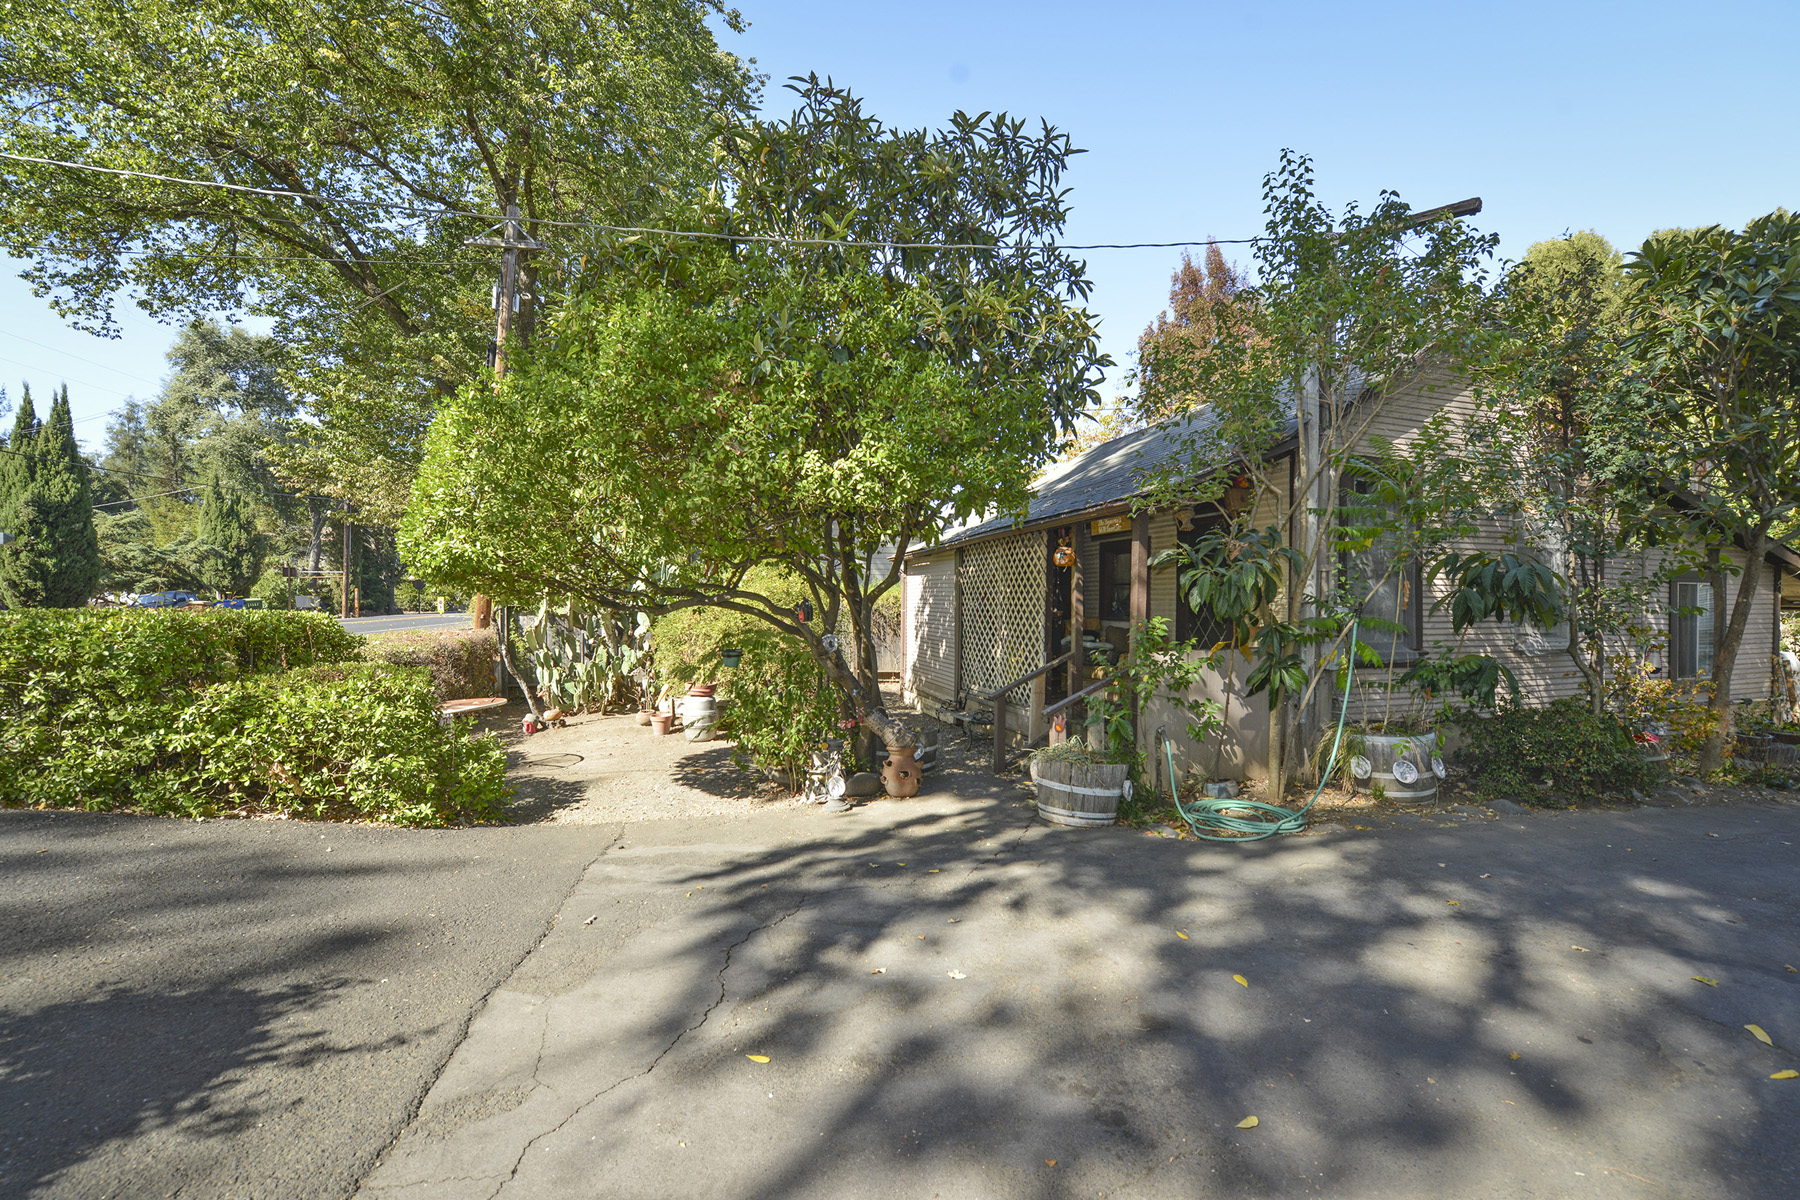 Single Family Home for Sale at 6638 Yount St, Yountville, CA 94599 6638 Yount St Yountville, California 94599 United States